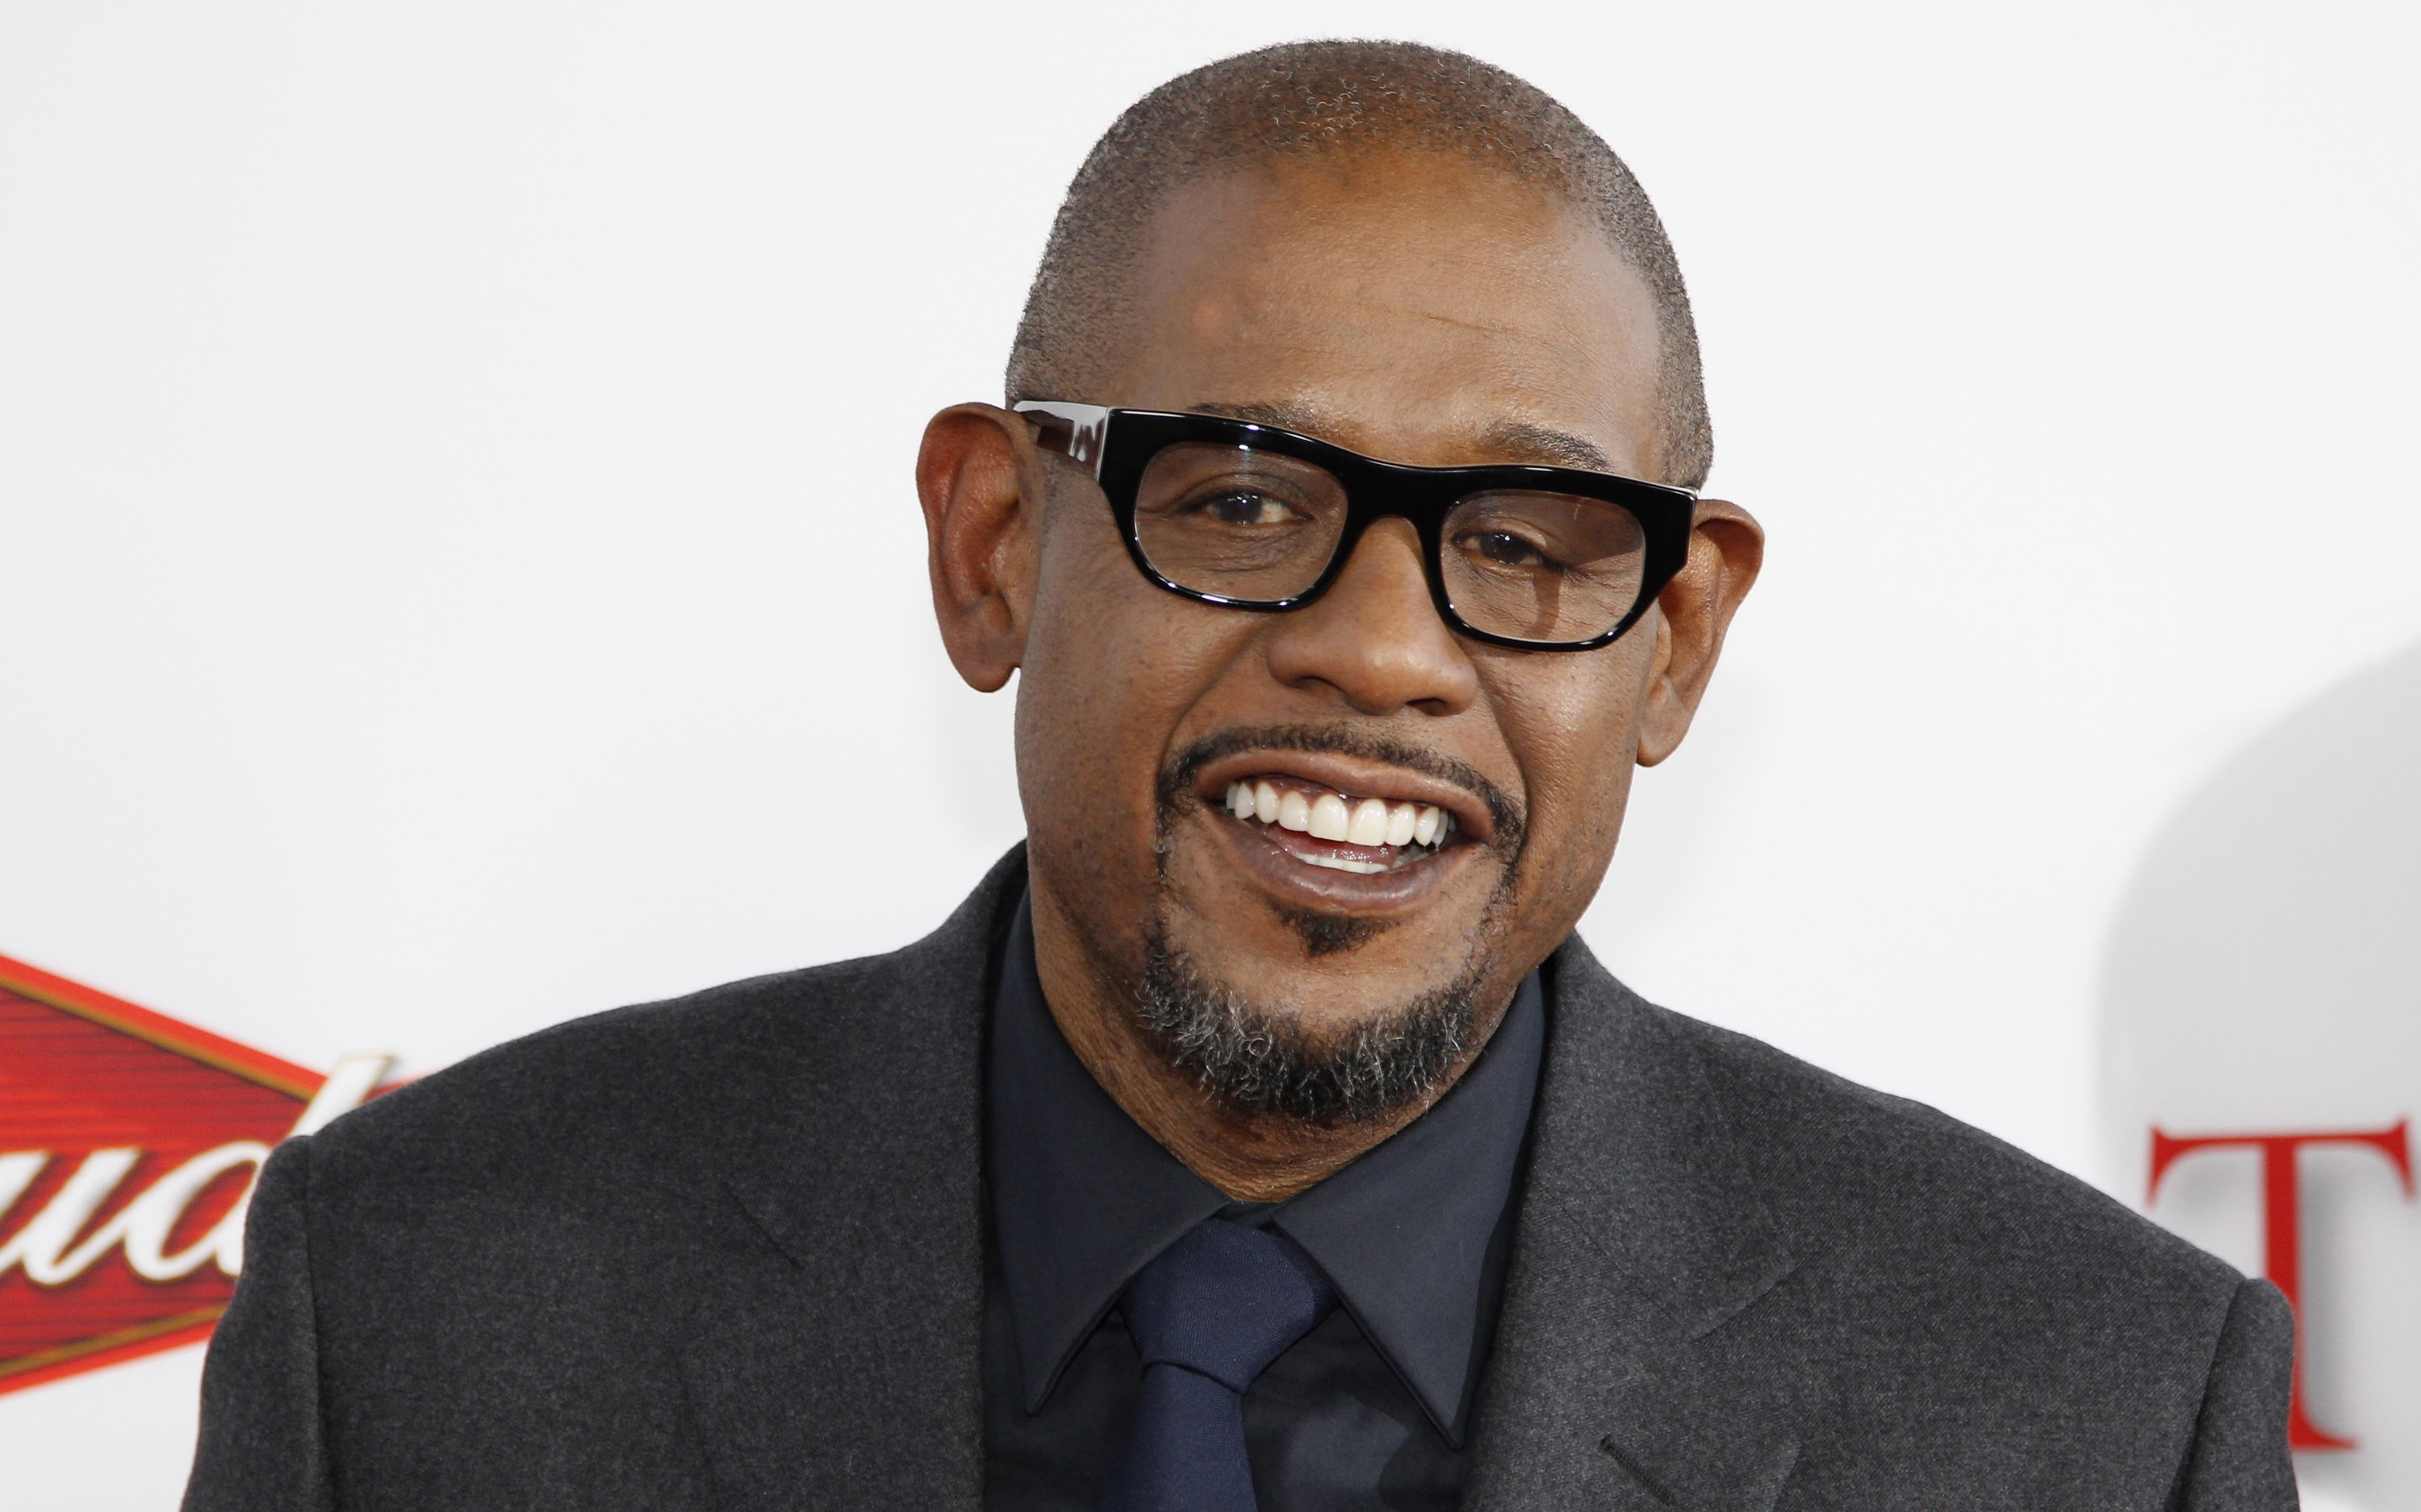 forest whitaker 4k widescreen desktop wallpaper 1069